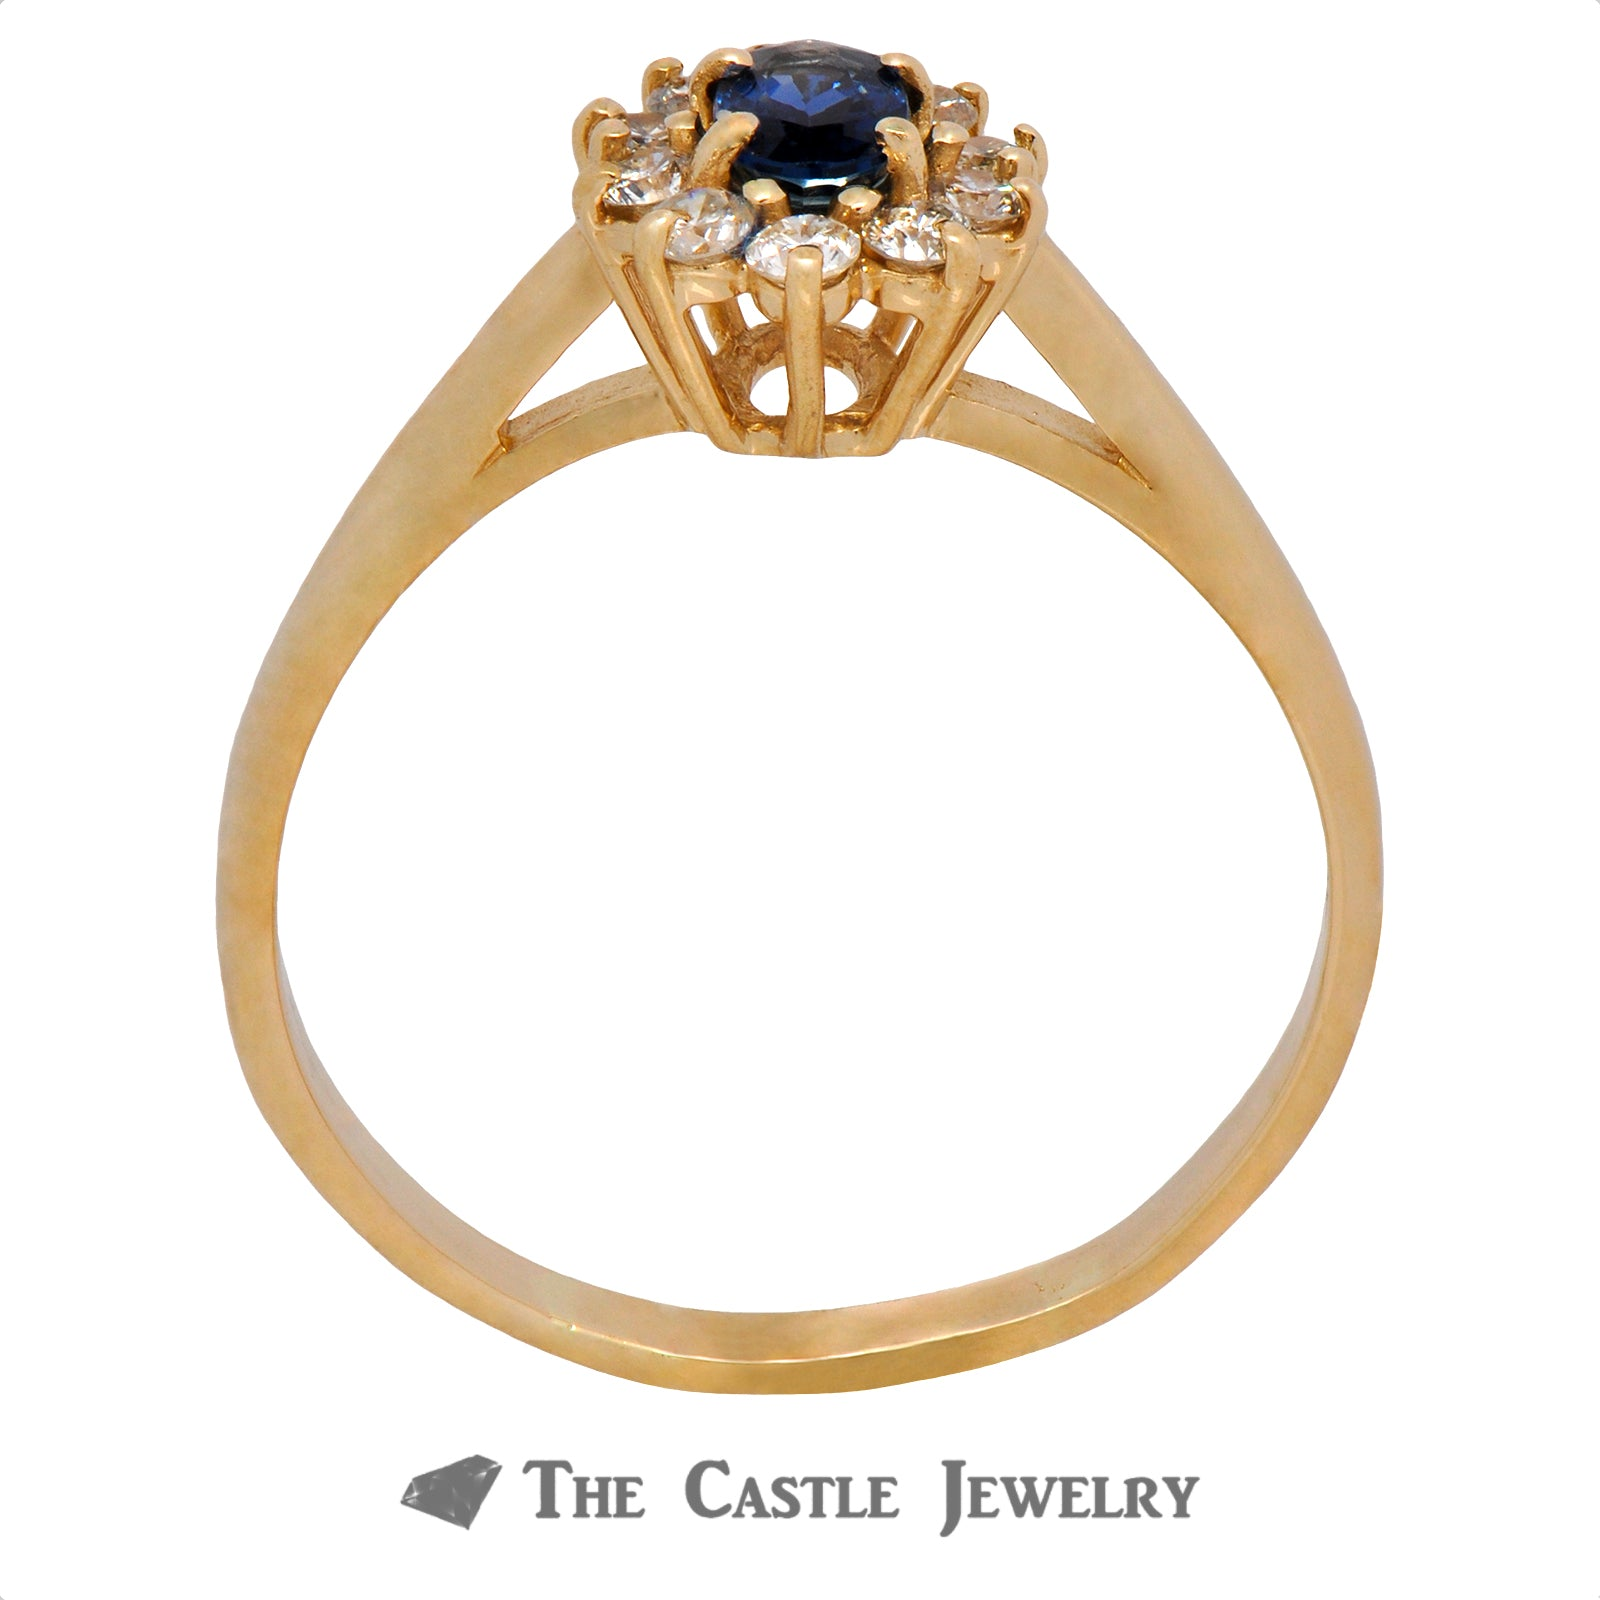 Oval Cut Sapphire Ring with Round Diamond Halo-1